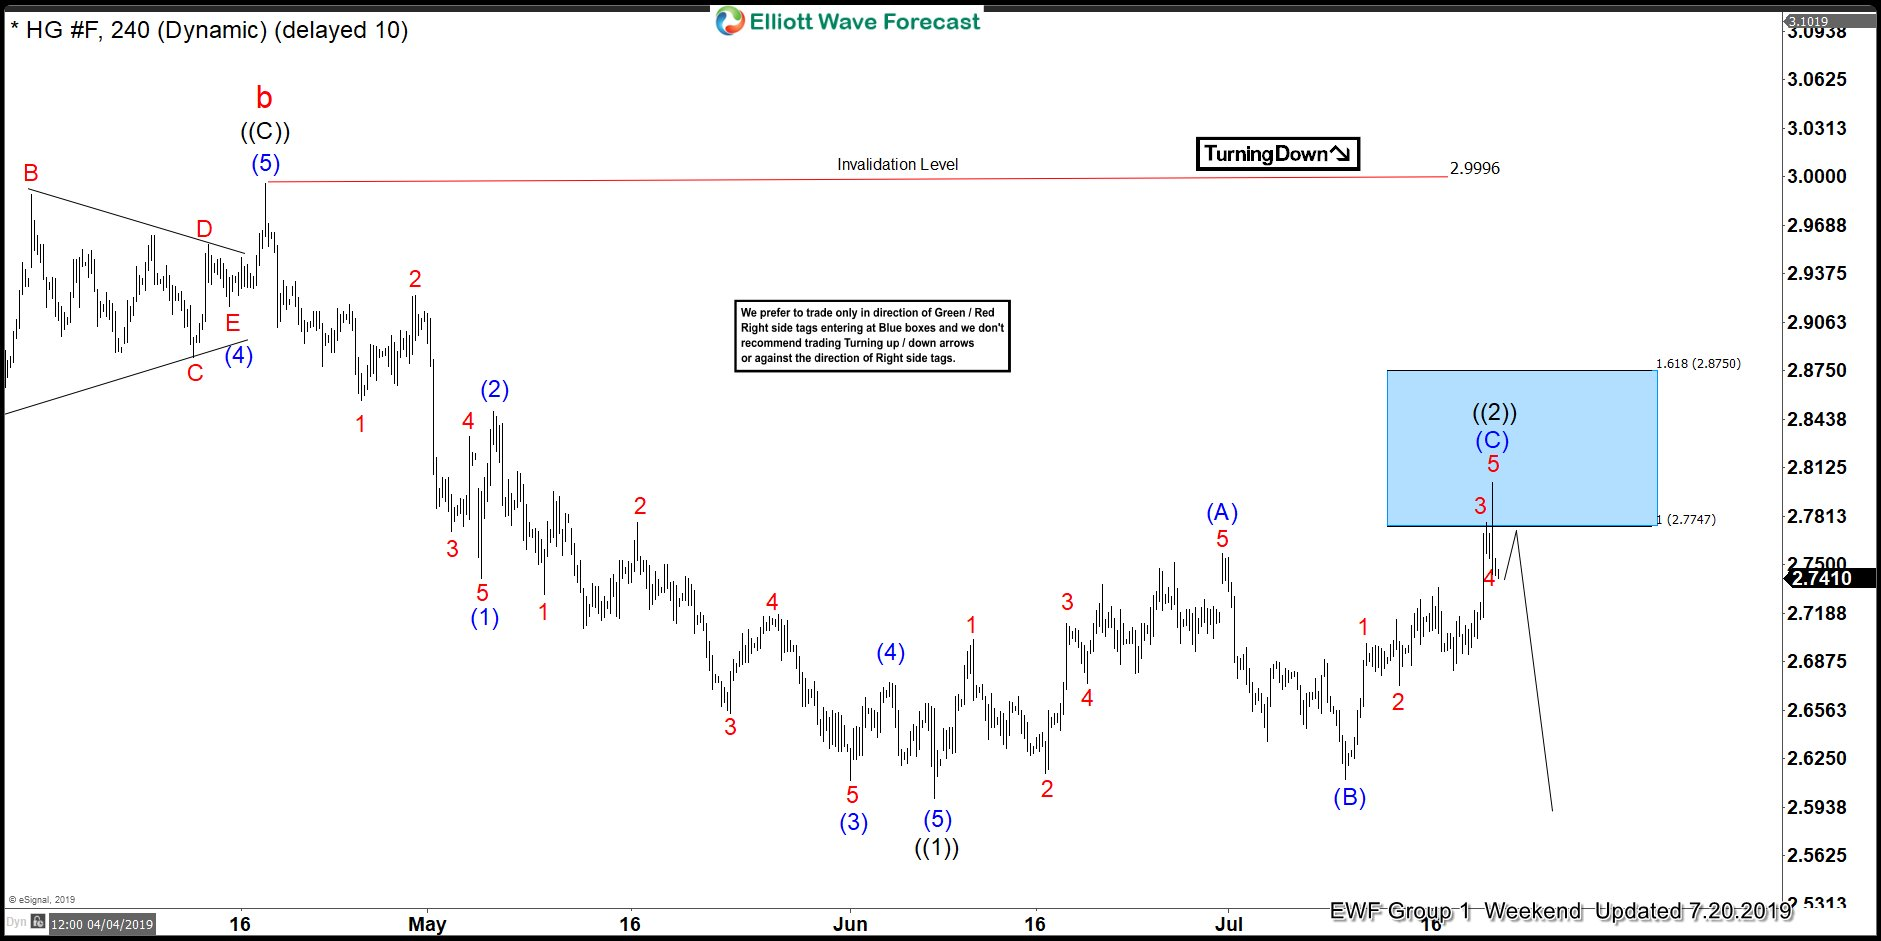 HG_F (Copper) 20 July 4 Hour Elliott Wave Update